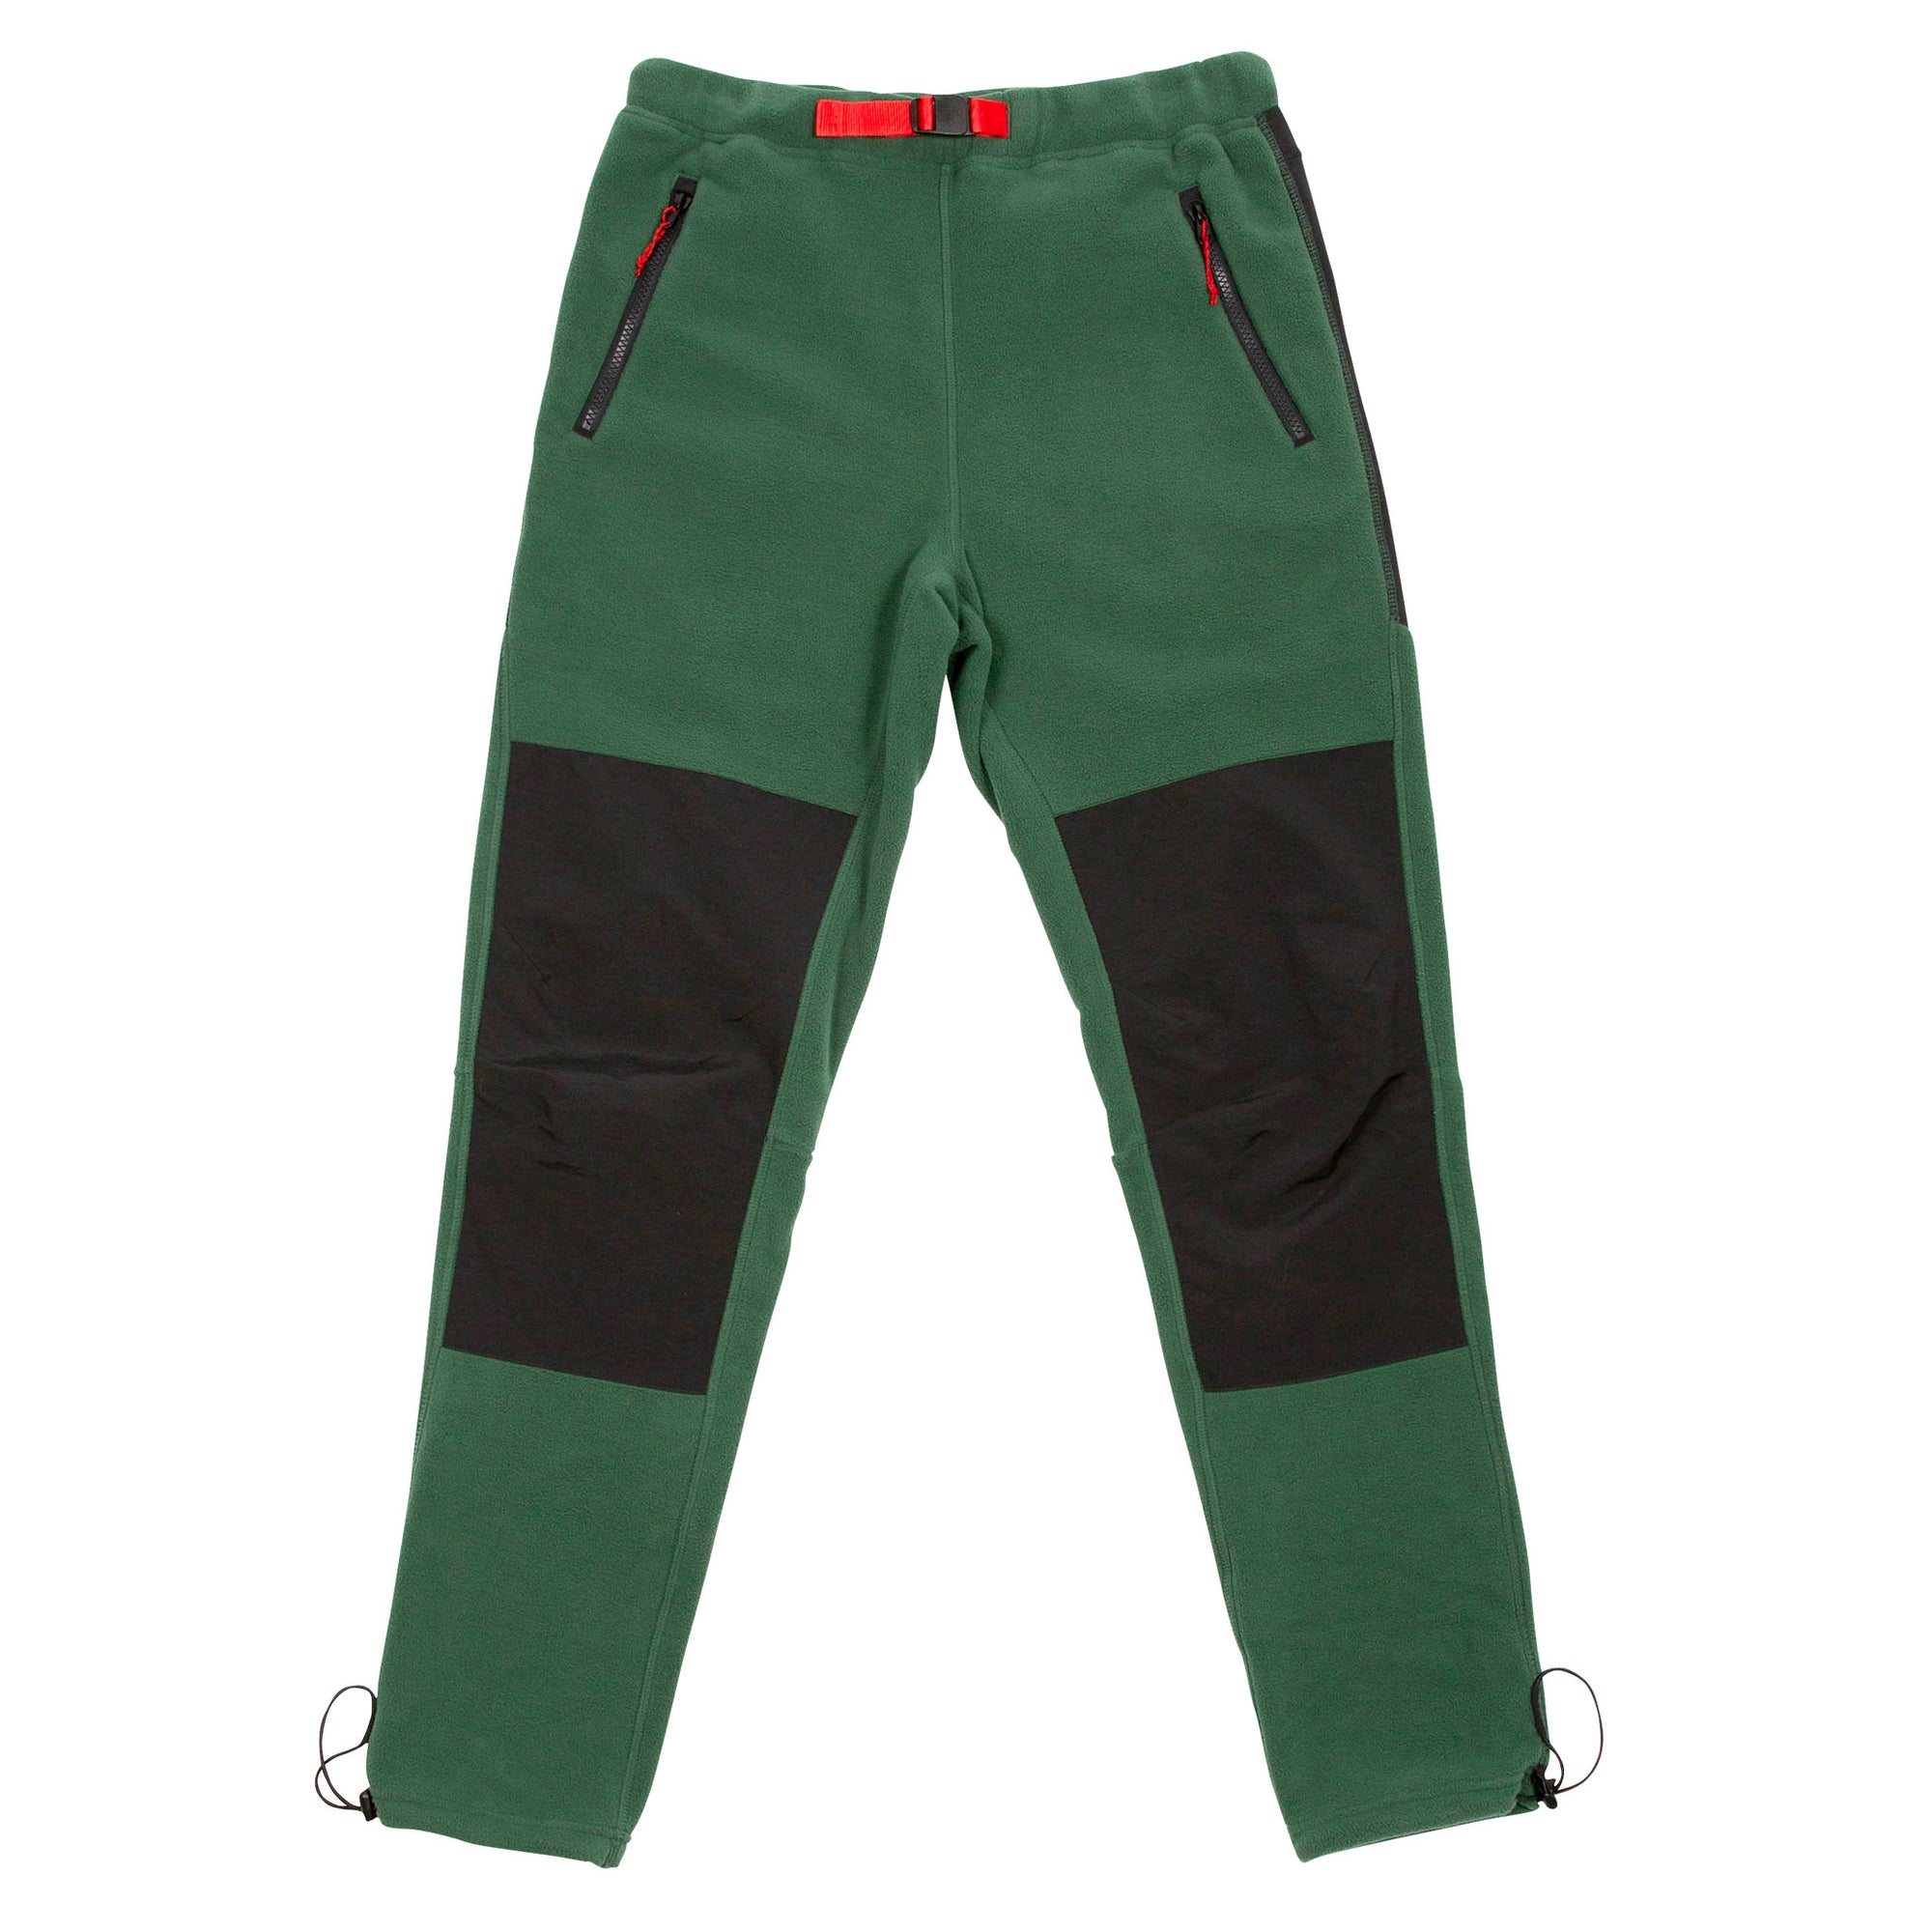 Topo Designs Men's Fleece Pants - Sale